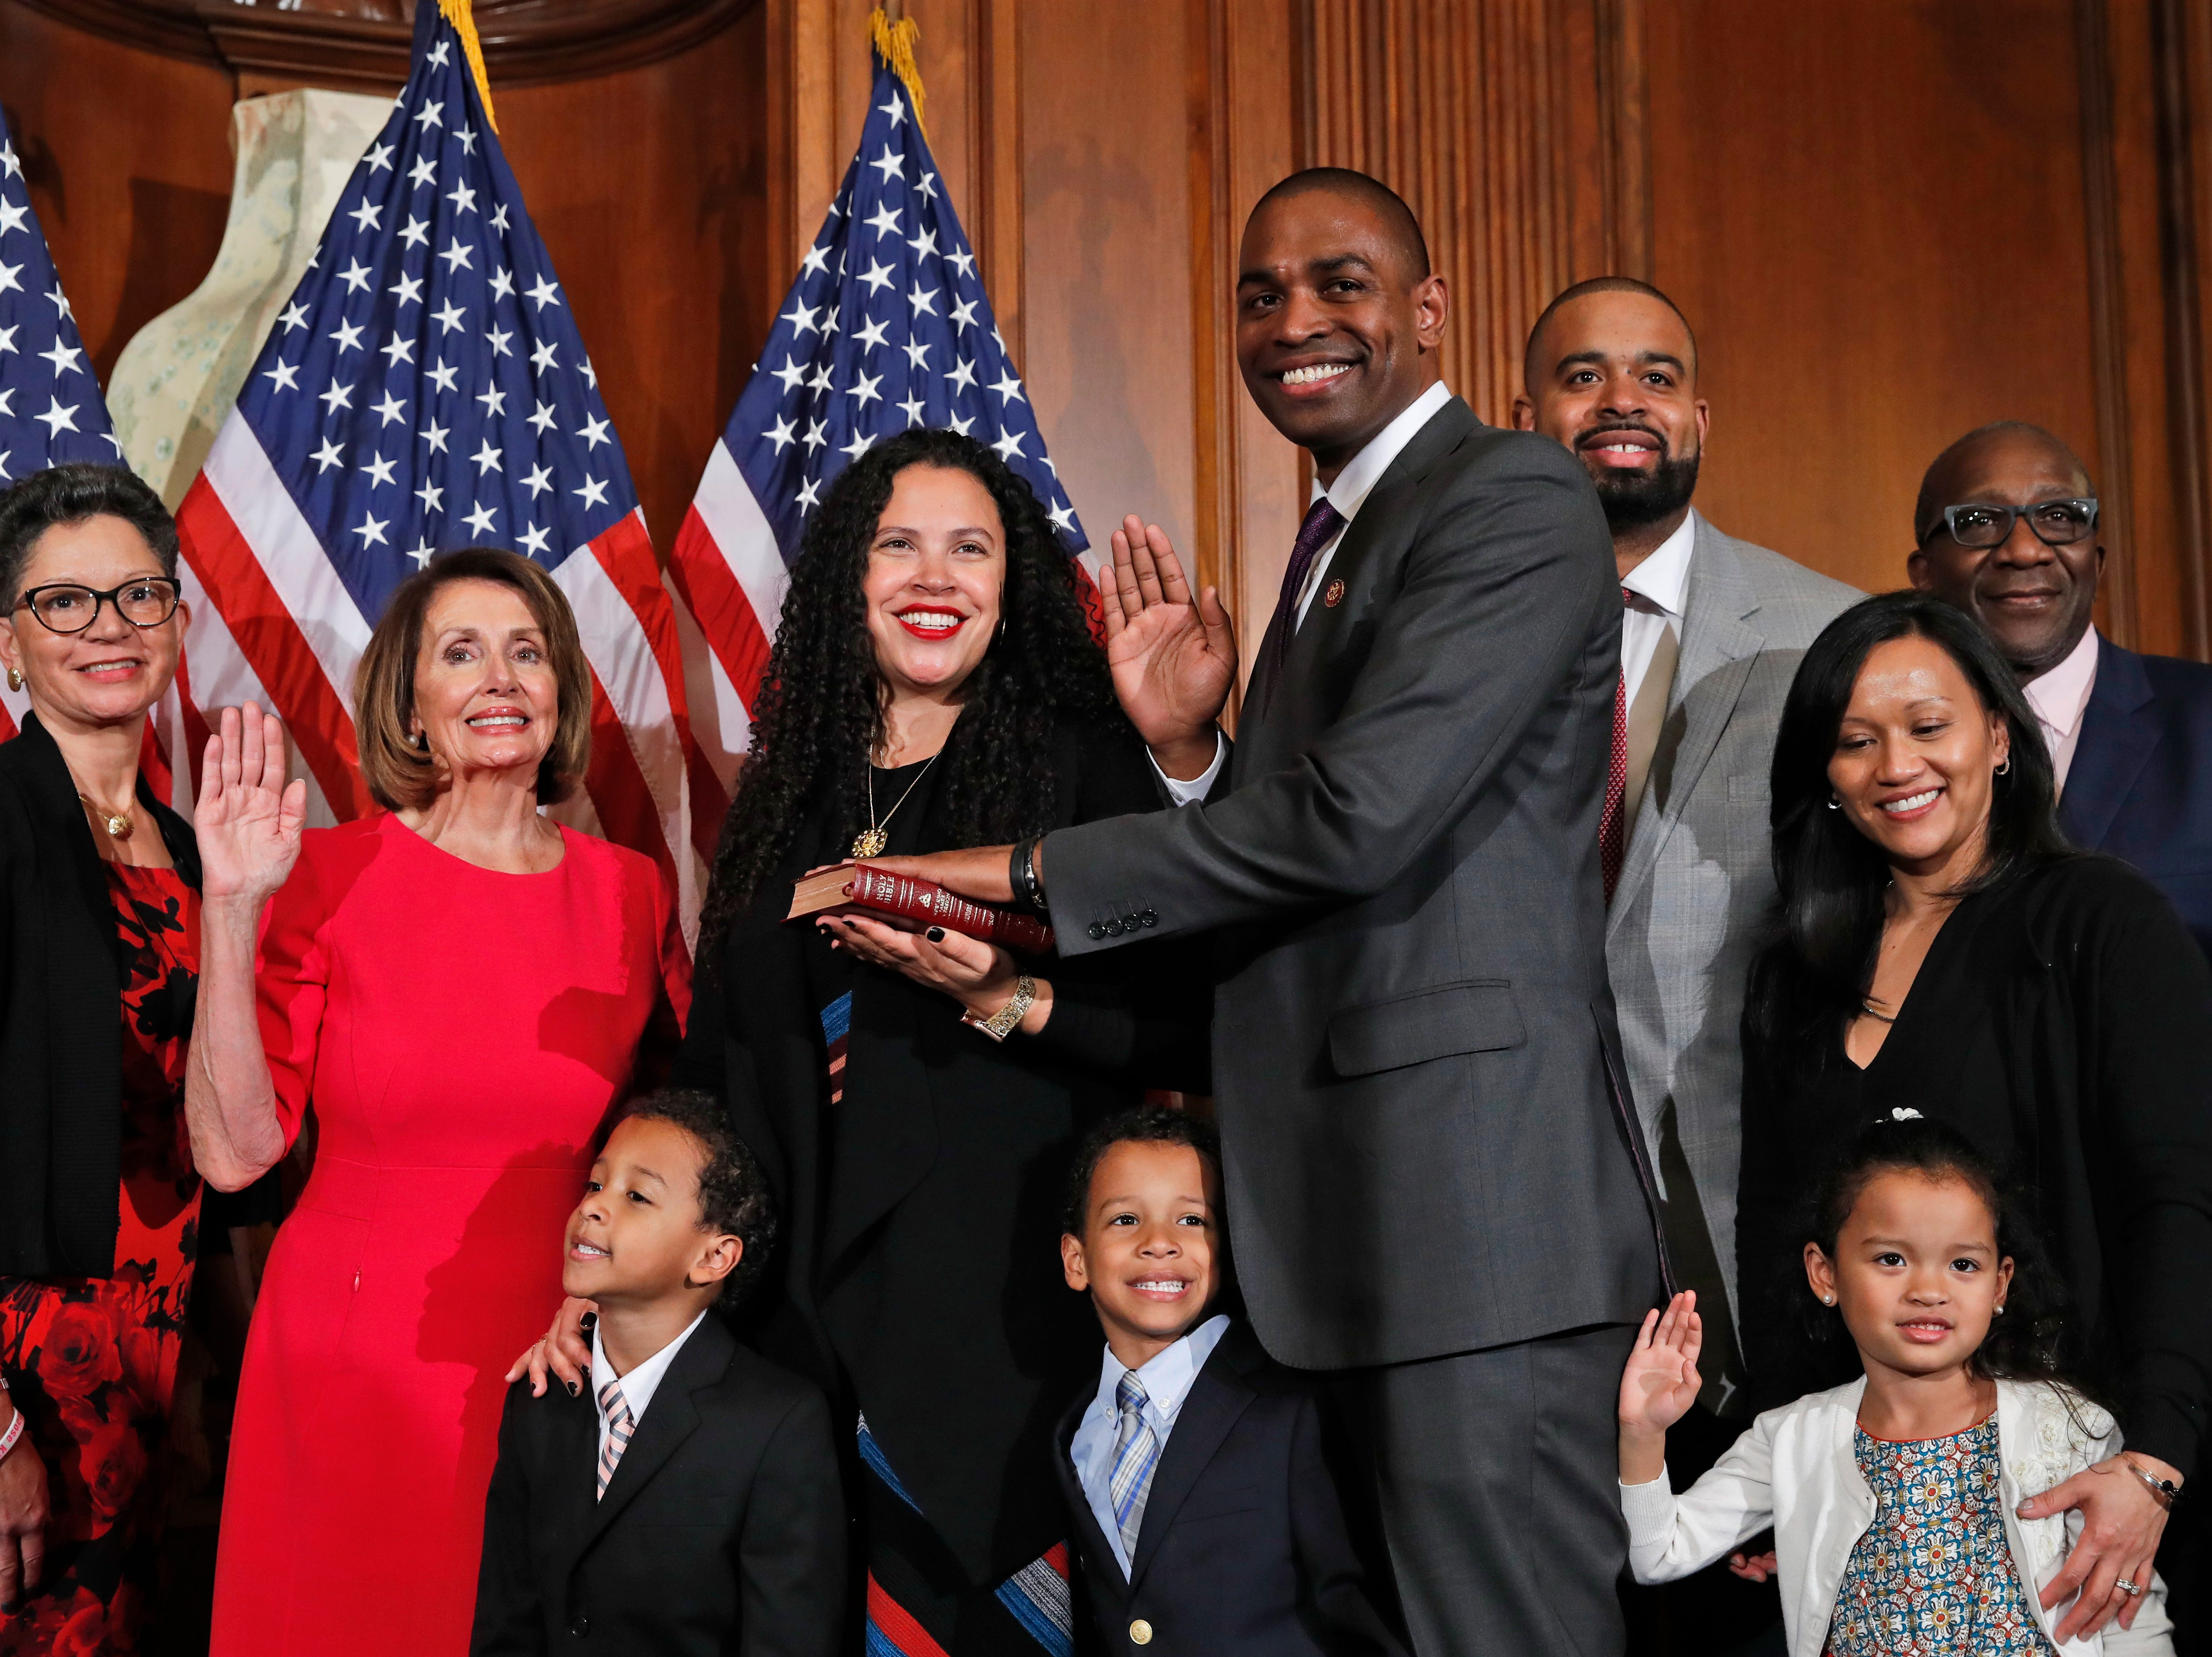 House Speaker Nancy Pelosi of Calif., left, poses during a ceremonial swearing-in with Rep. Antonio Delgado, D-N.Y., right, on Capitol Hill, Thursday, Jan. 3, 2019 in Washington during the opening session of the 116th Congress.. (AP Photo/Alex Brandon)